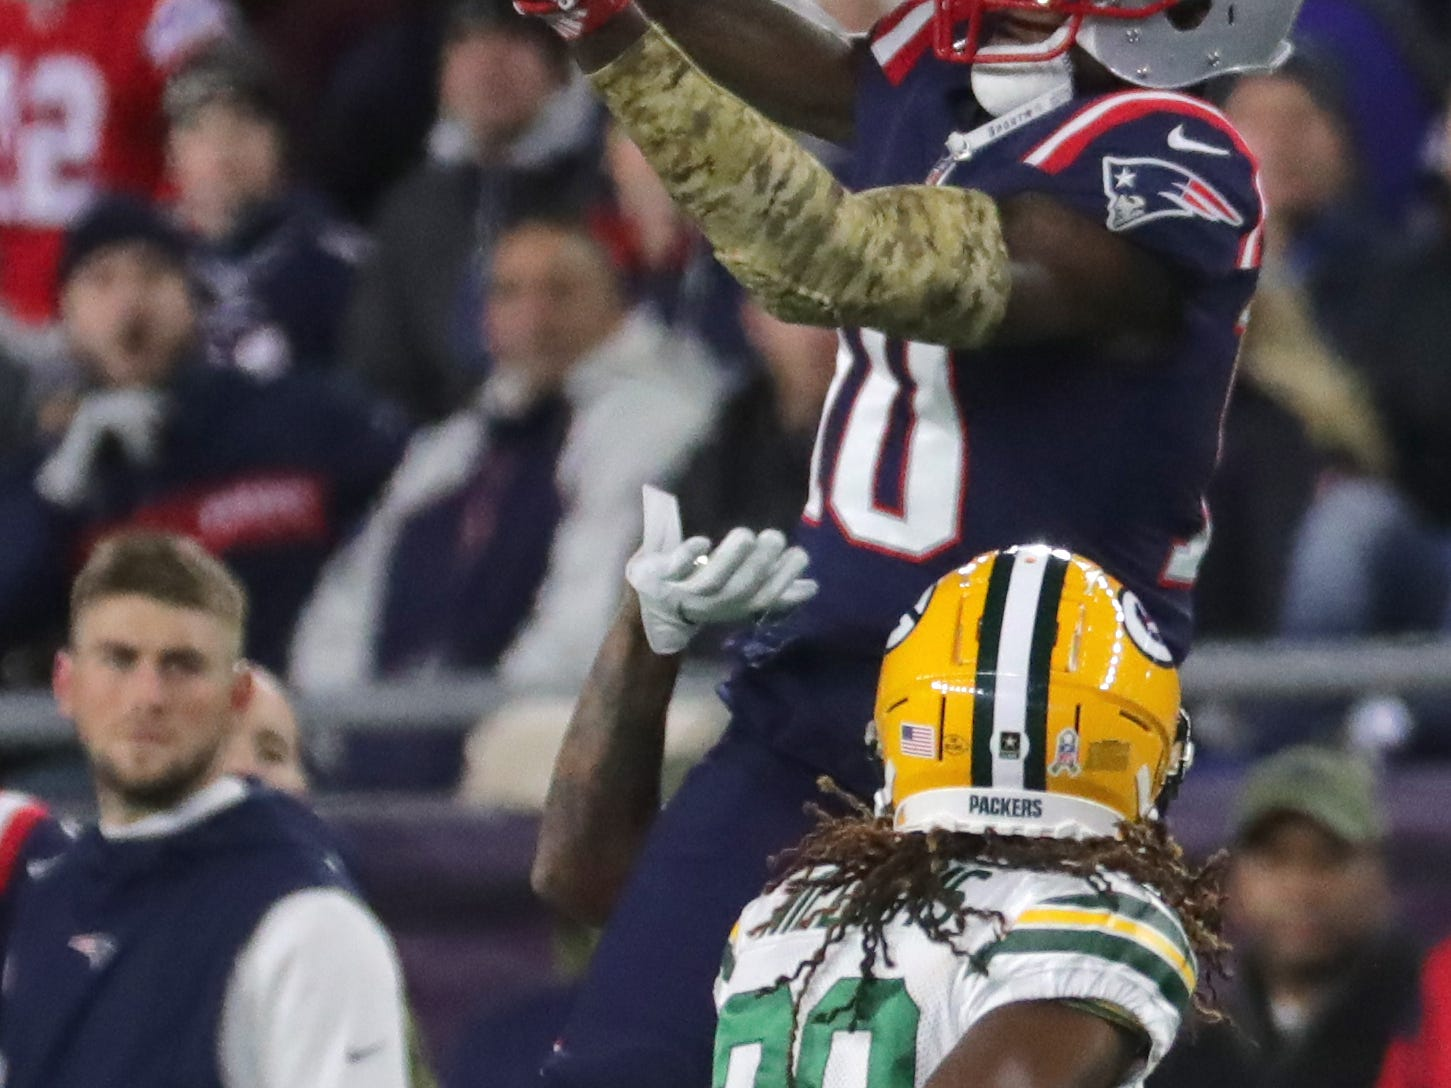 New England Patriots wide receiver Josh Gordon (10) reels in a 29-yard reception while being covered by Green Bay Packers cornerback Tramon Williams (38) during the second quarter of their game Sunday, November 4, 2018 at Gillette Stadium in Foxborough, Mass.